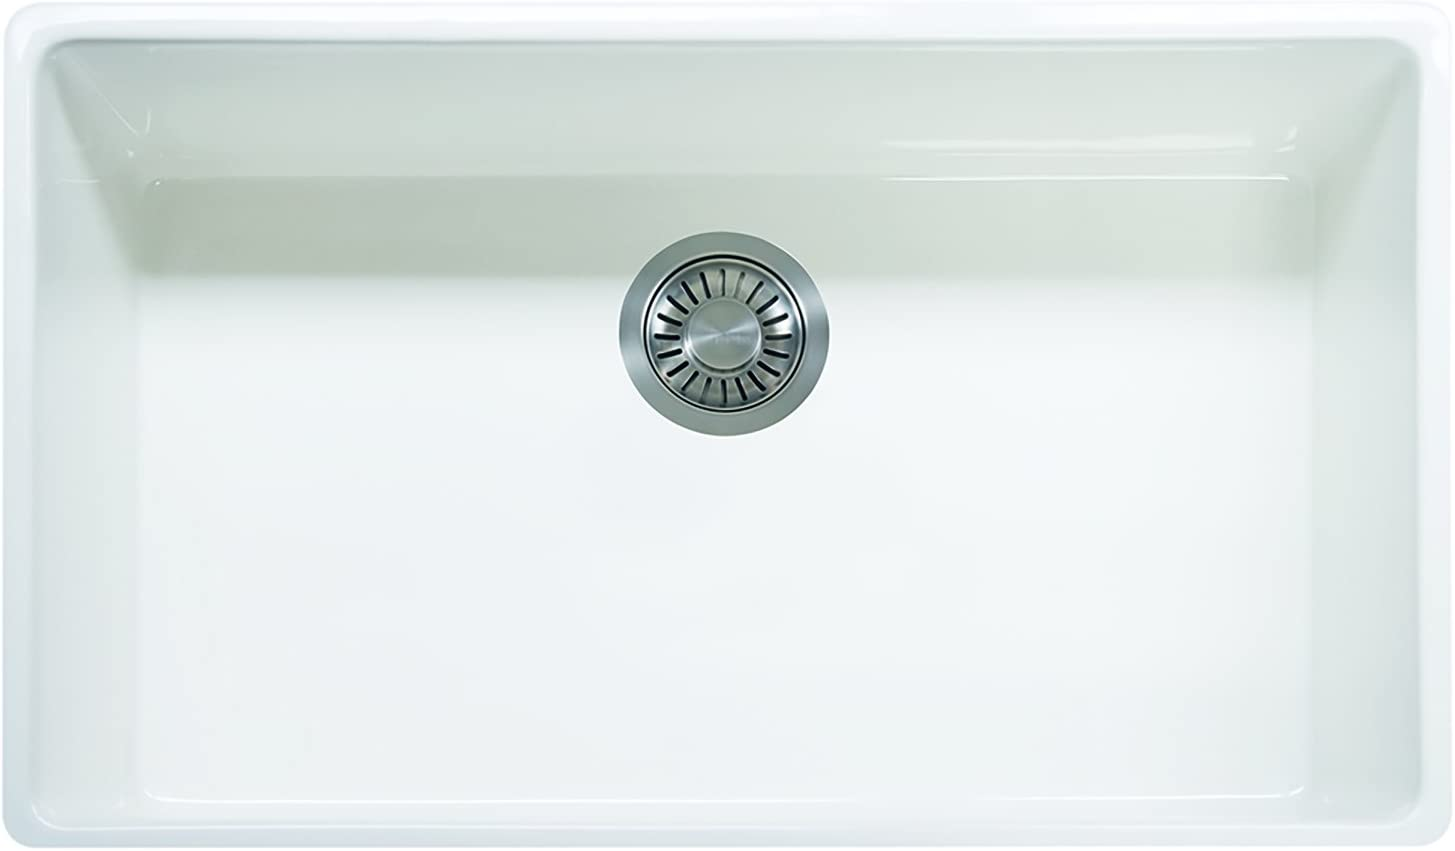 Franke FHK710-33WH Farm House 33 x 20 x 10 1 8 Apron Front Single Bowl Fireclay Kitchen Sink White